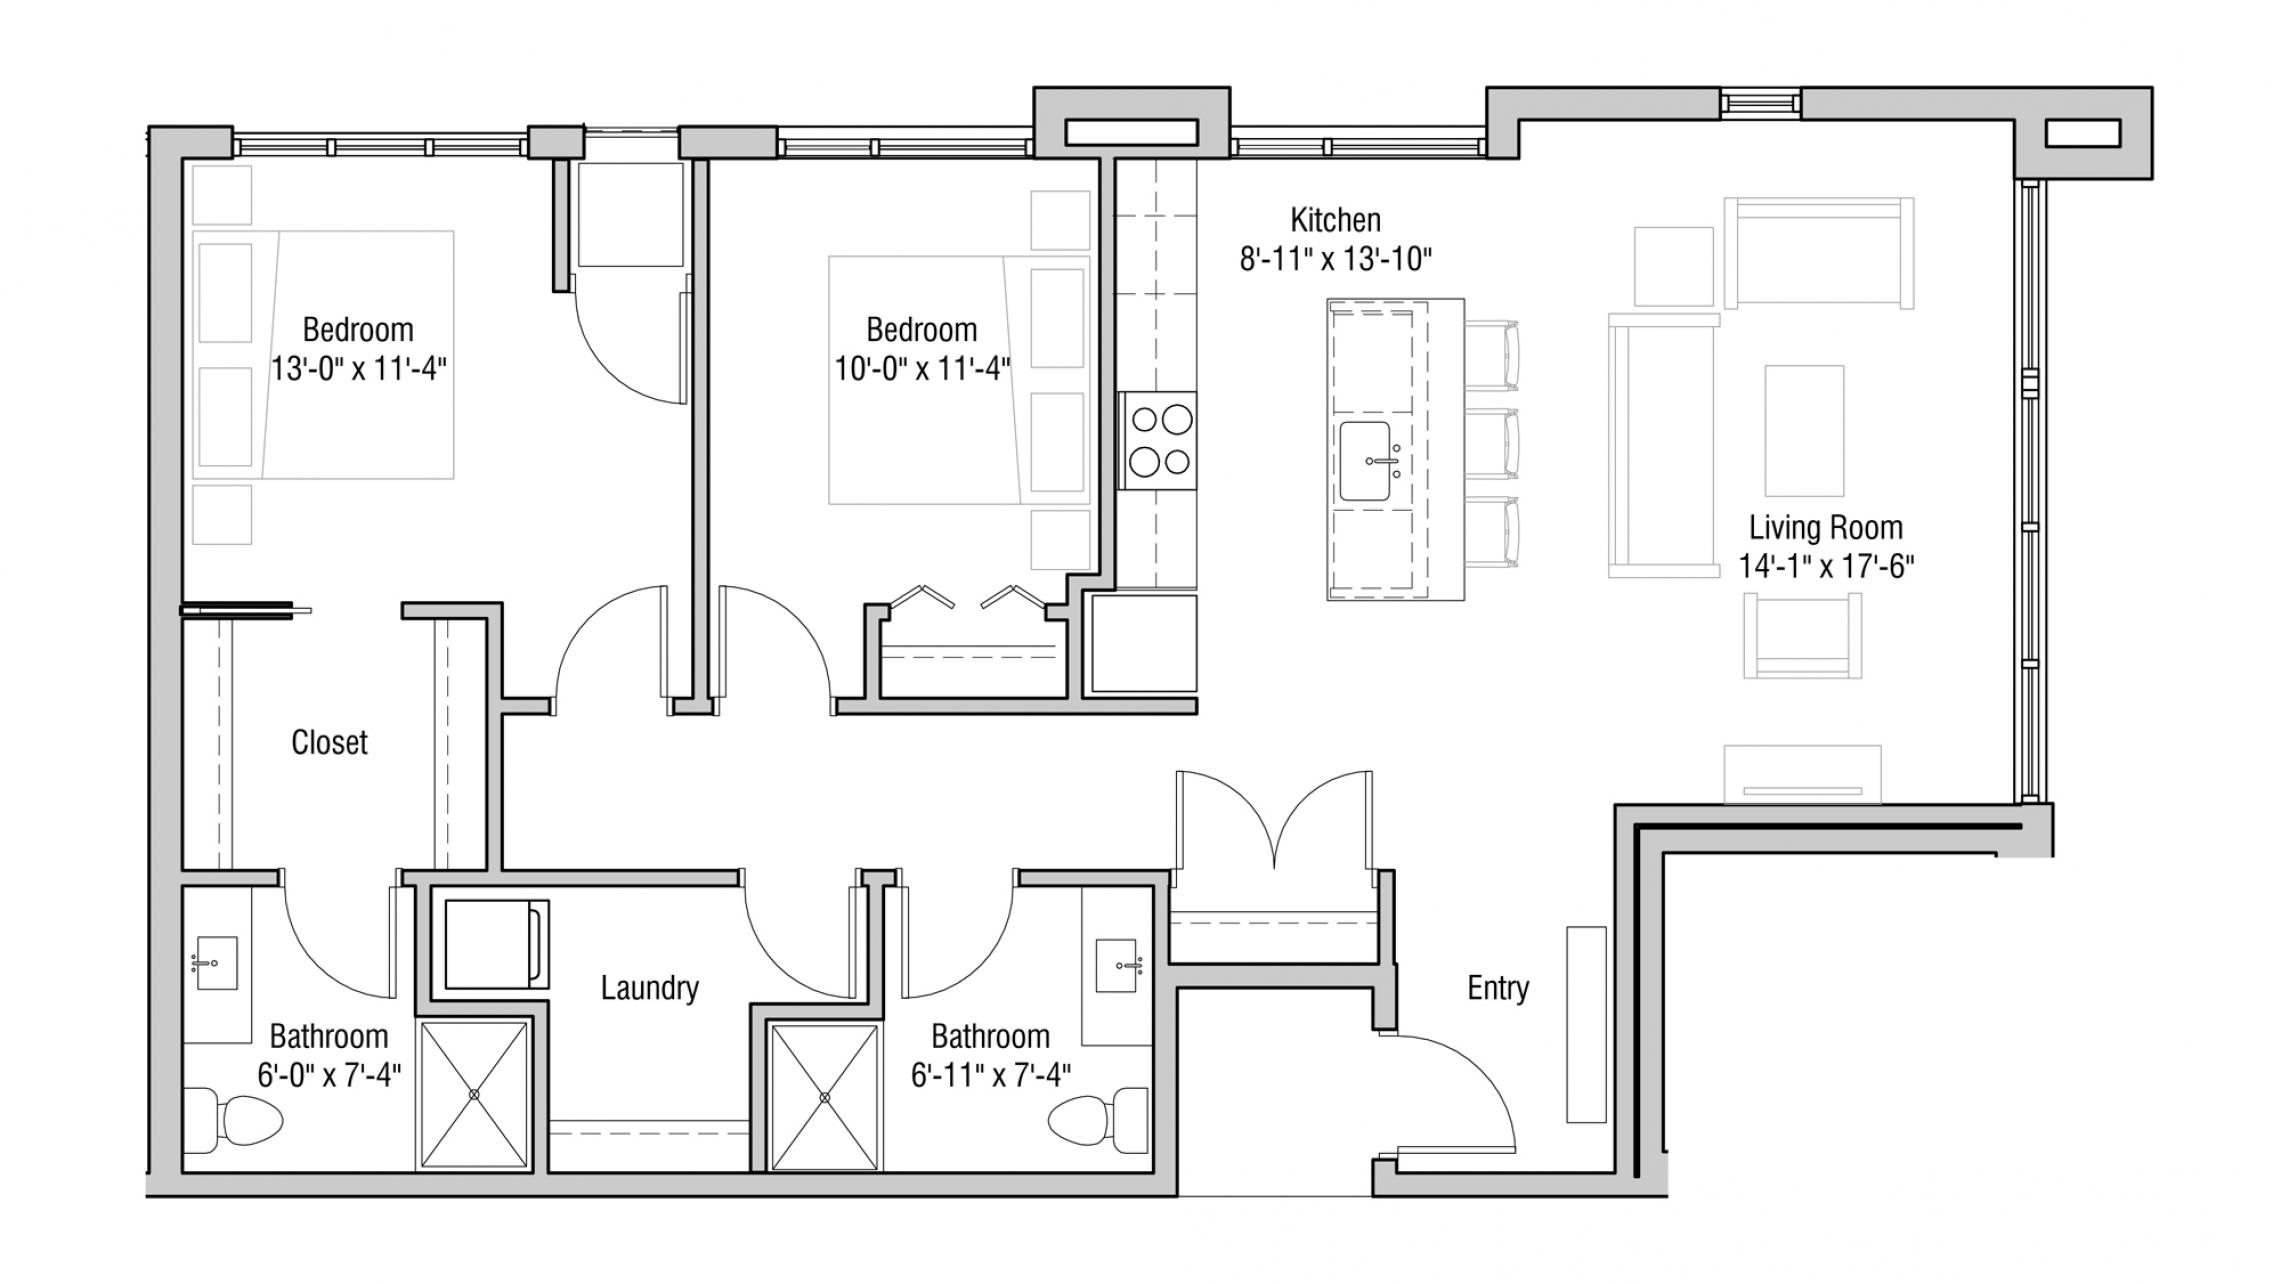 ULI Quarter Row 215 - Two Bedroom, Two Bathroom